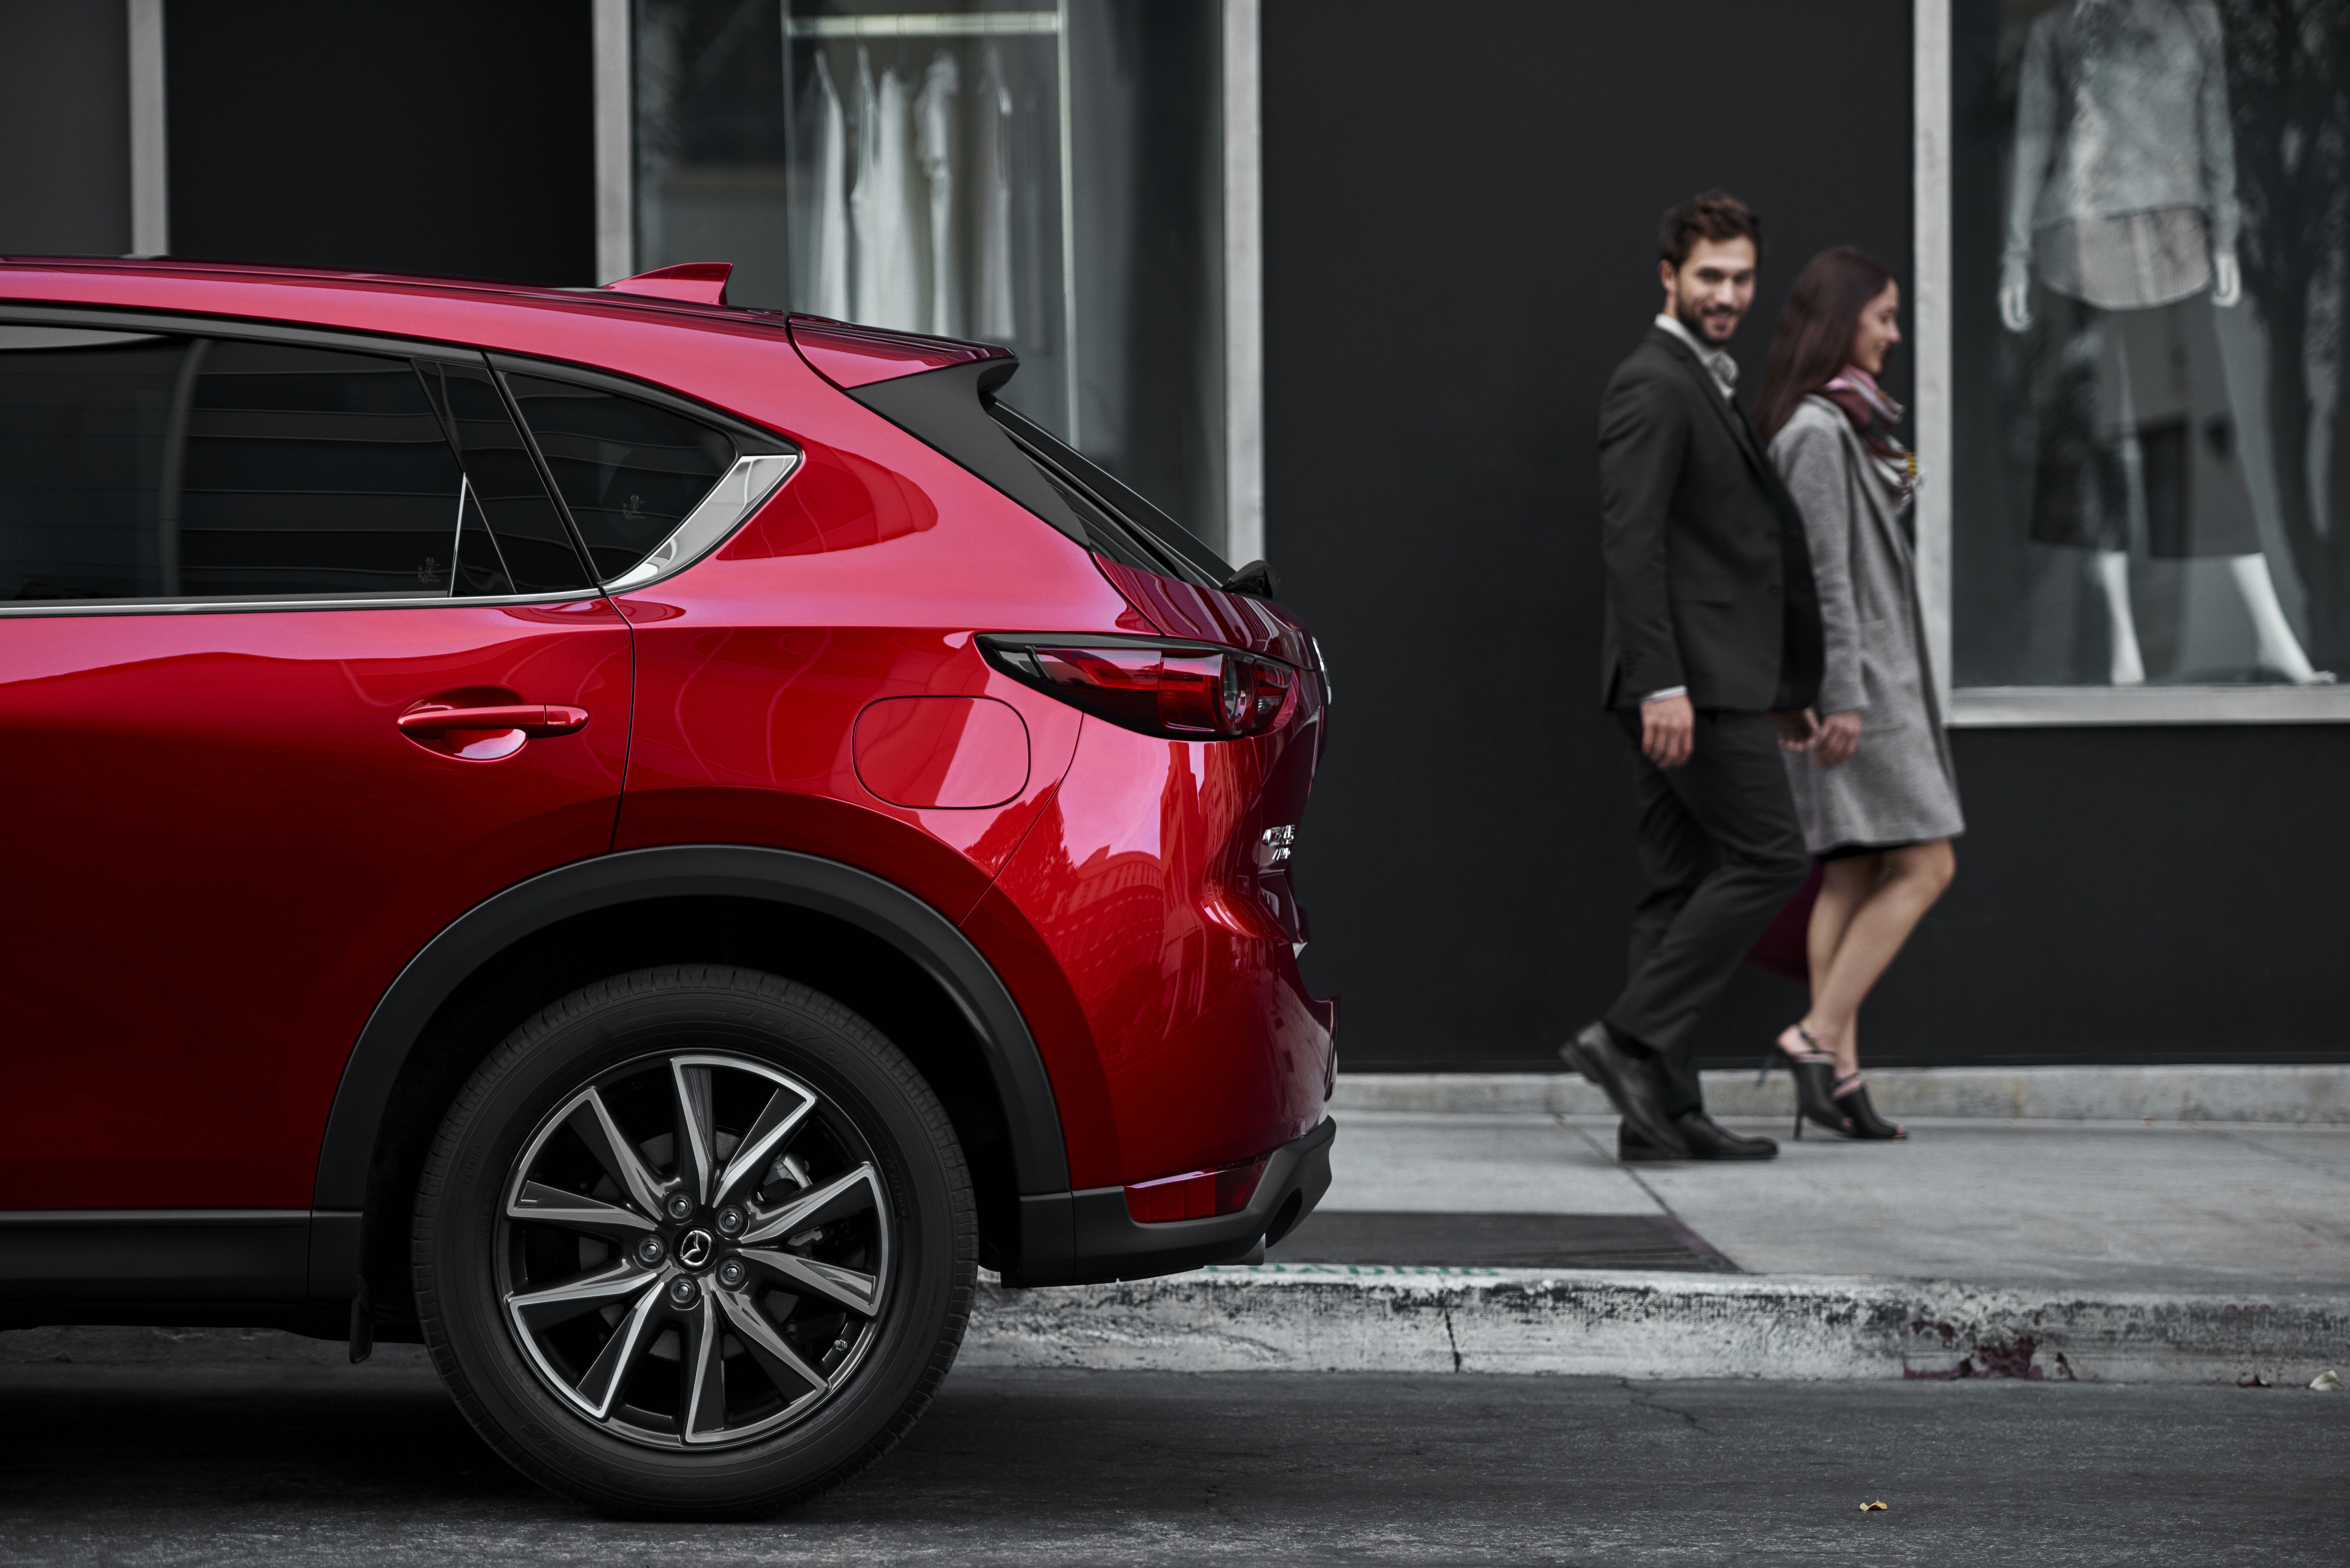 premiere ex amazonaws nikkei business new s koeru mazda in china review gb ap suv to eng ftnikkei asian crossover northeast com